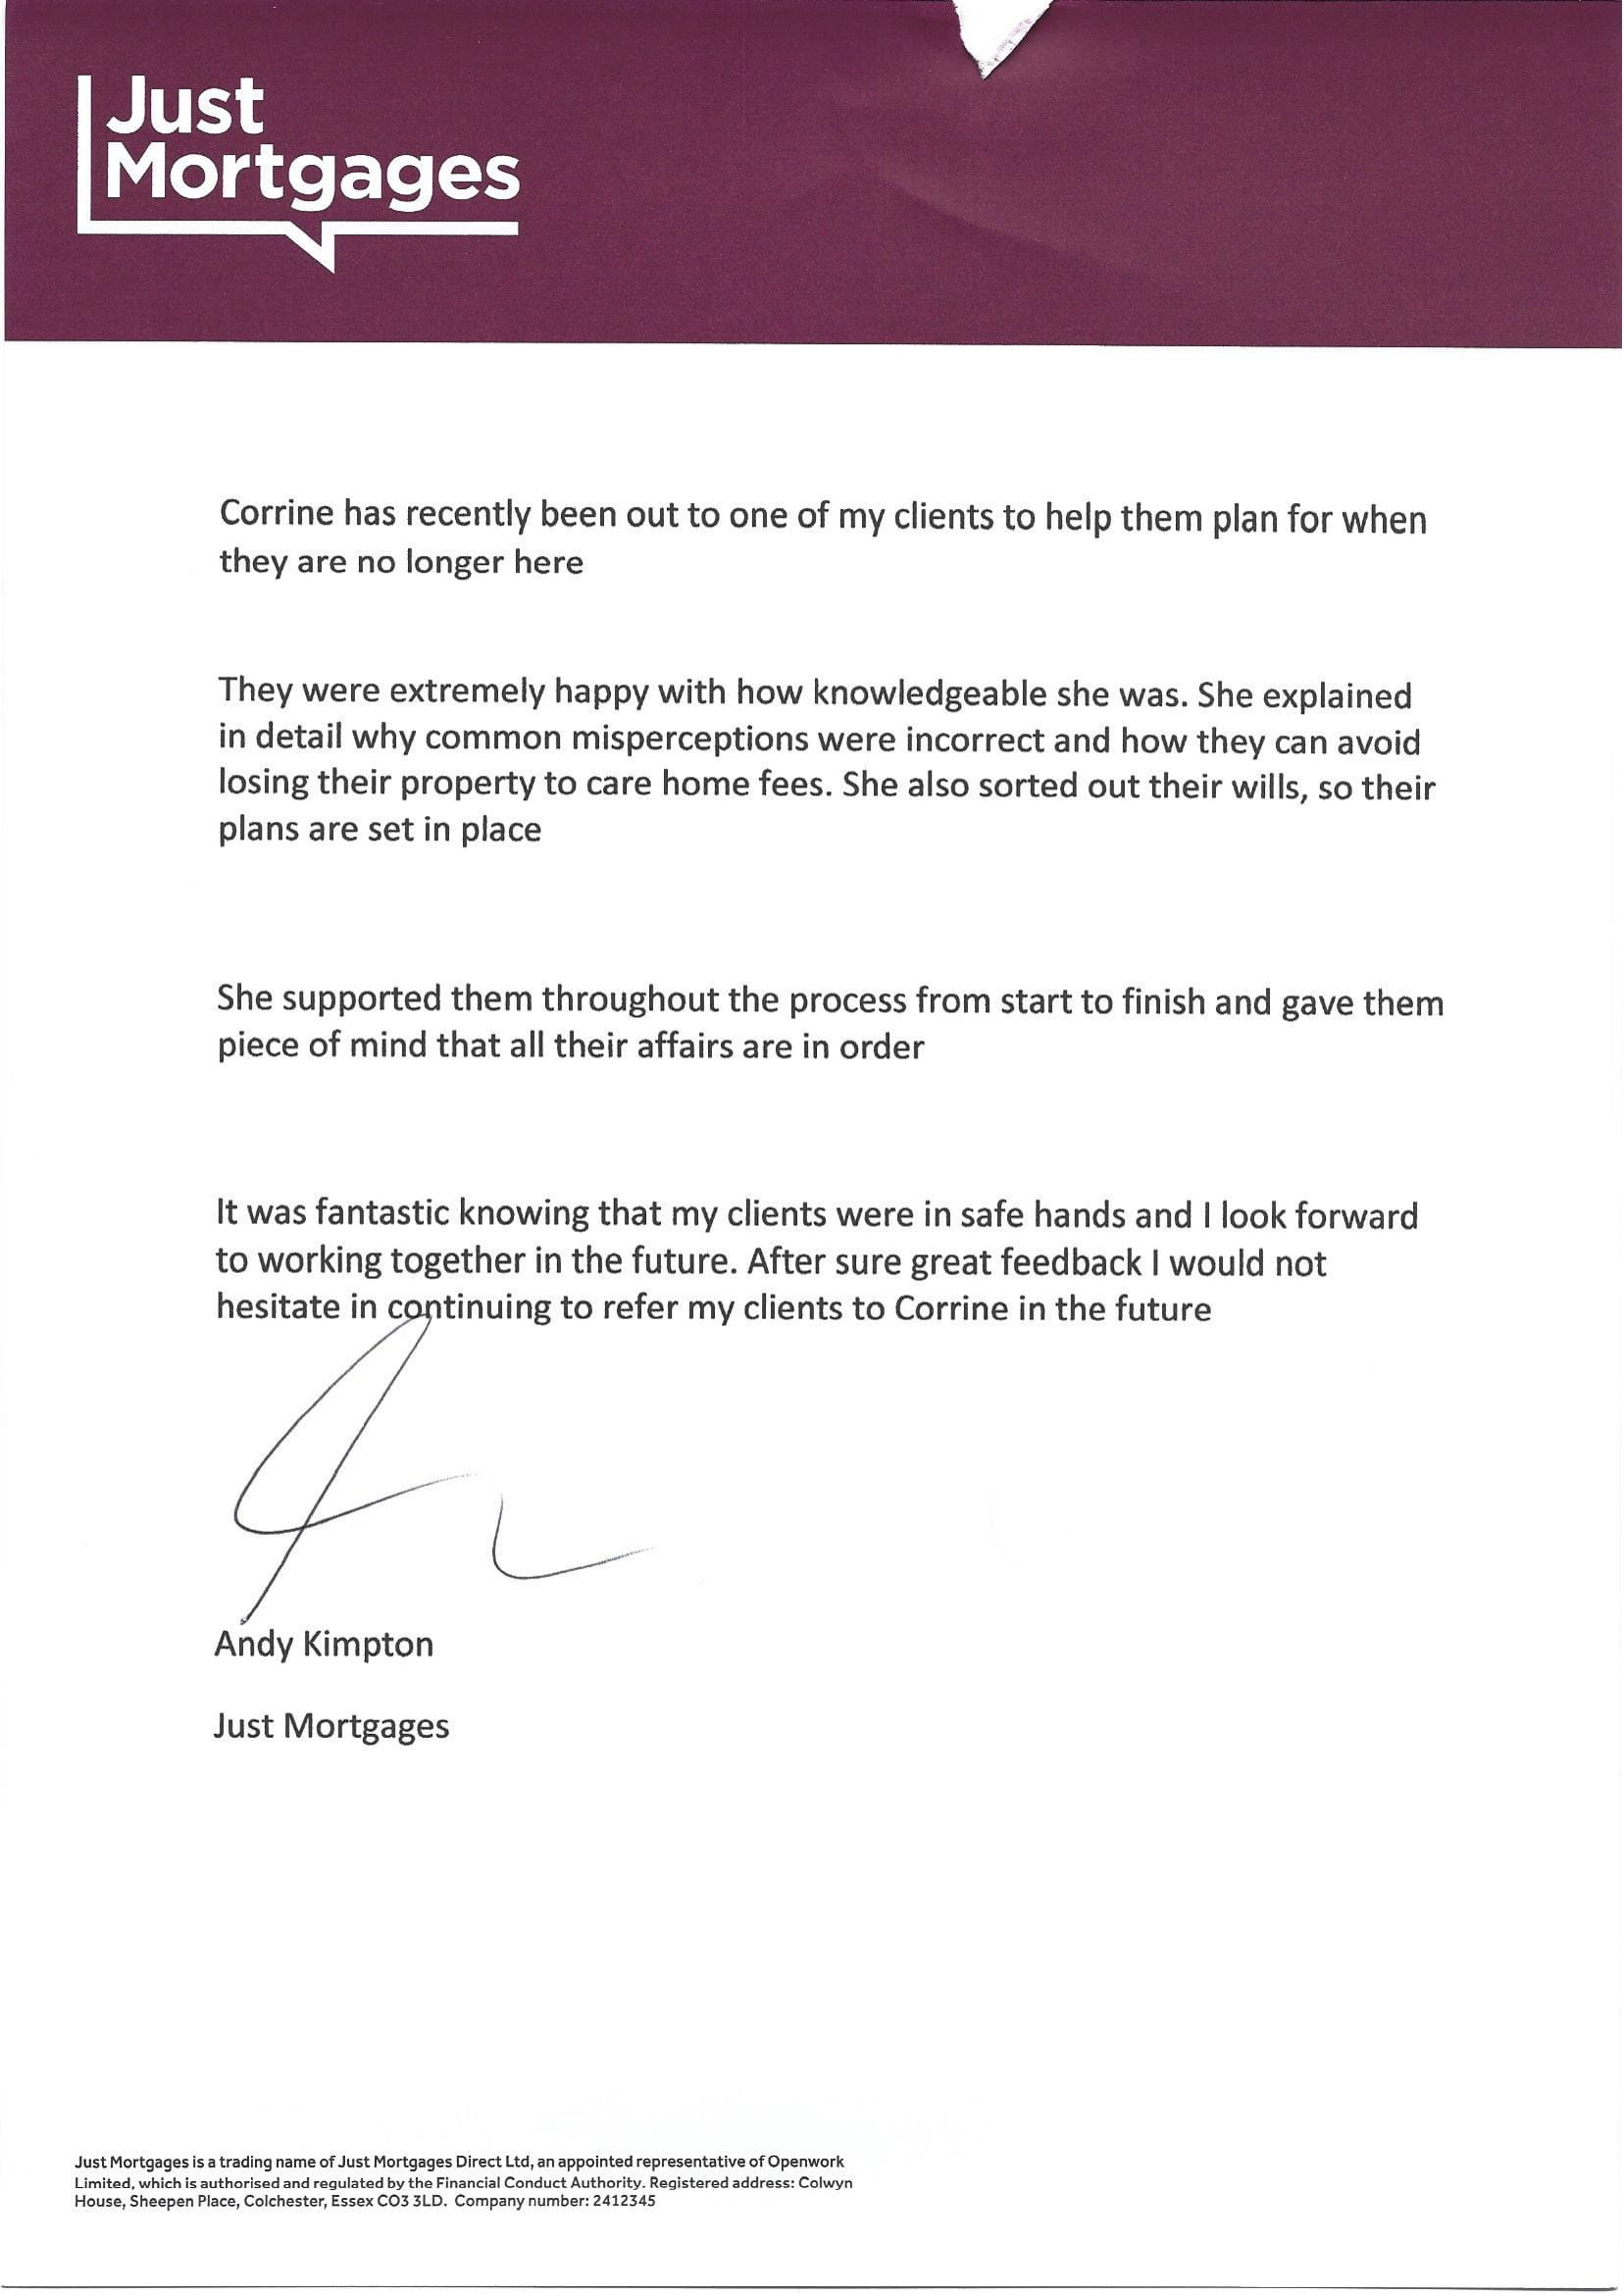 Testimonial on printed letterhead from Andy Kimpton, Just Mortgages, Liverpool to Where There's A Will, Southport, Merseyside.